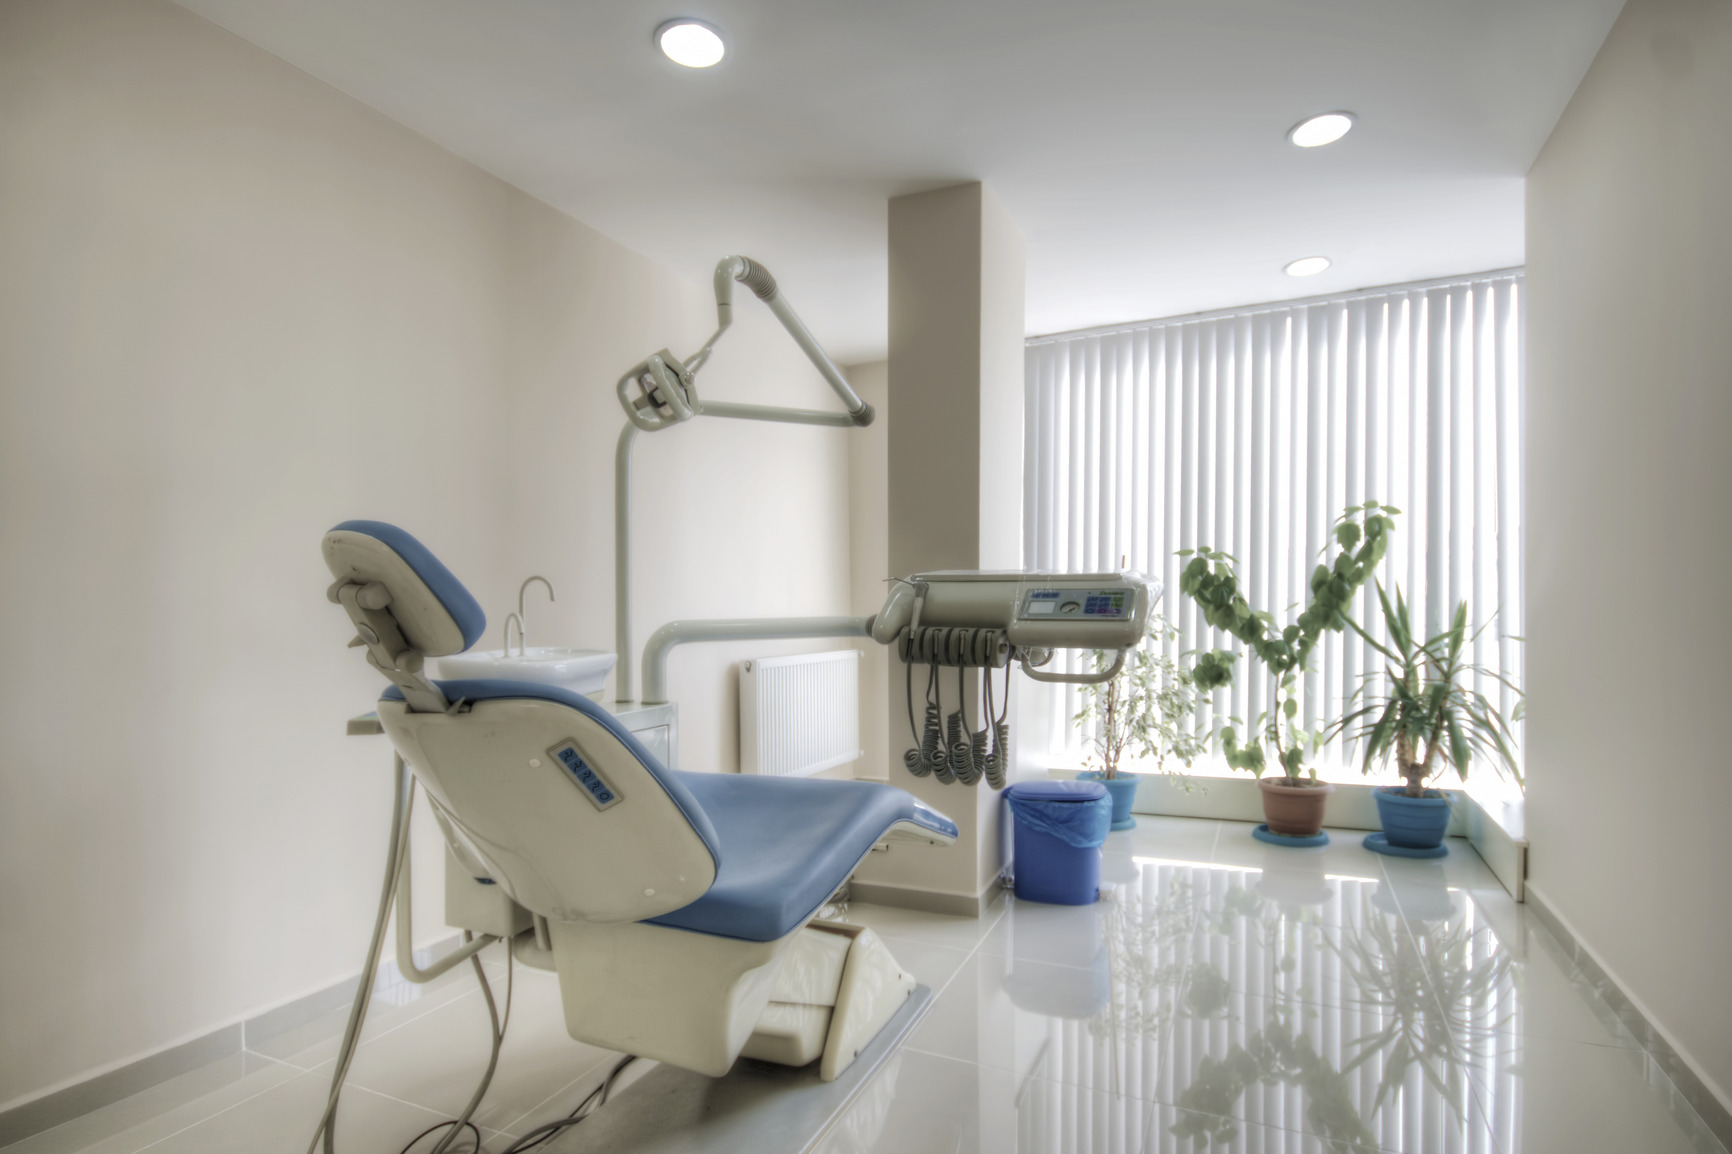 Dentist's room